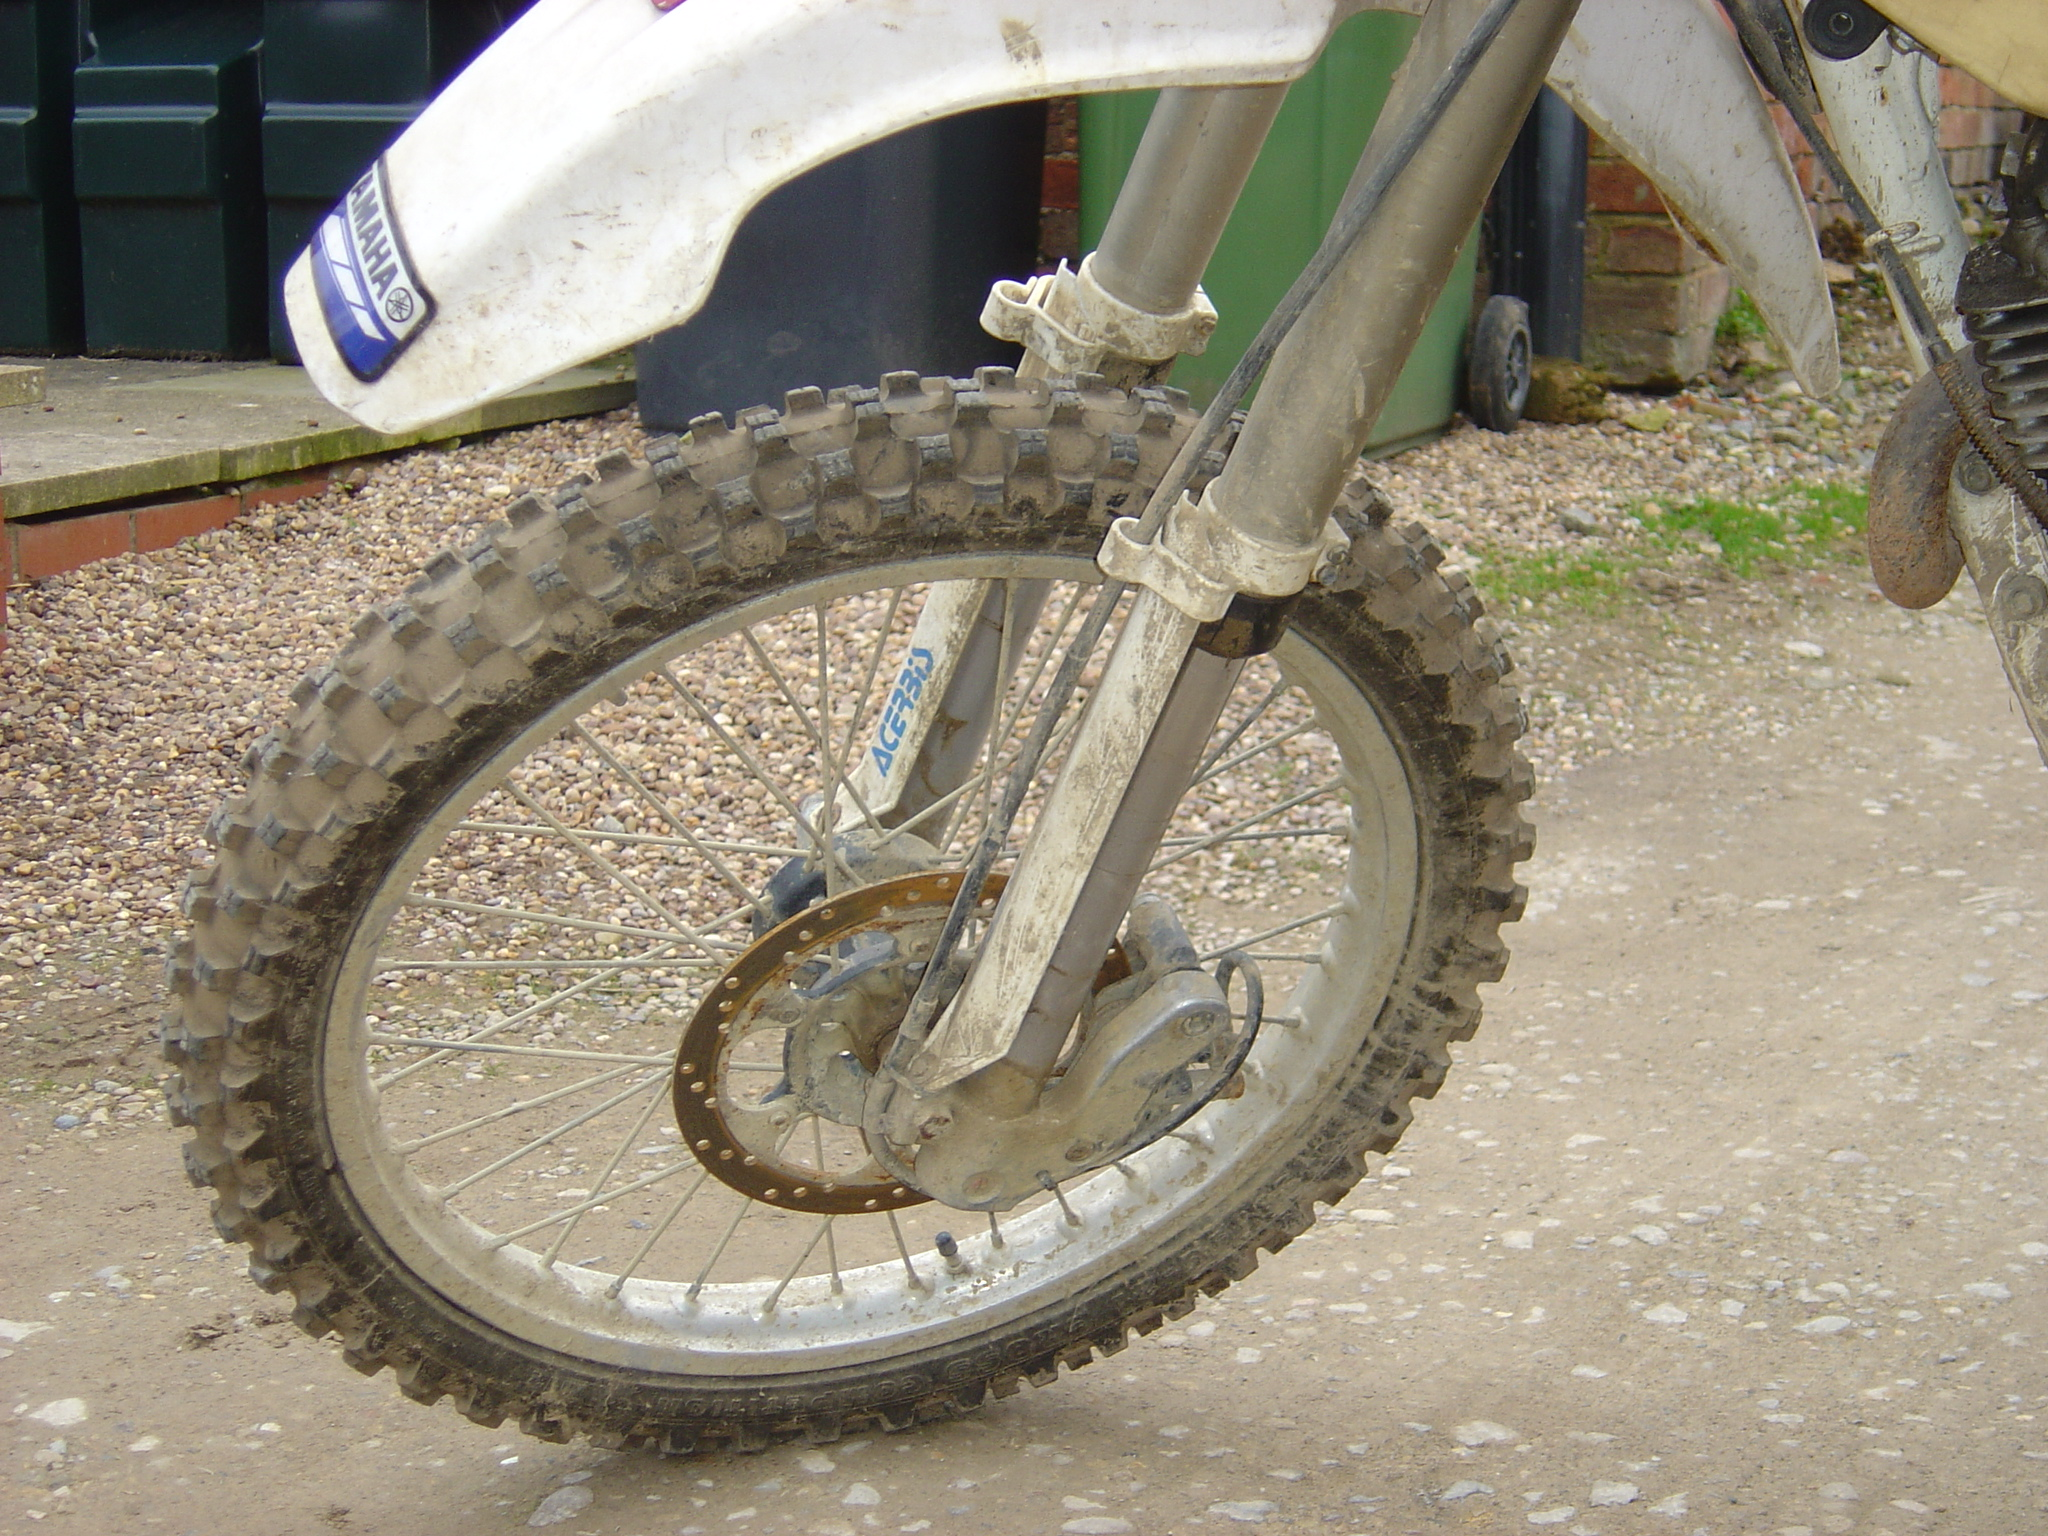 Yamaha dtr spare parts for Colorado motorized bicycle laws